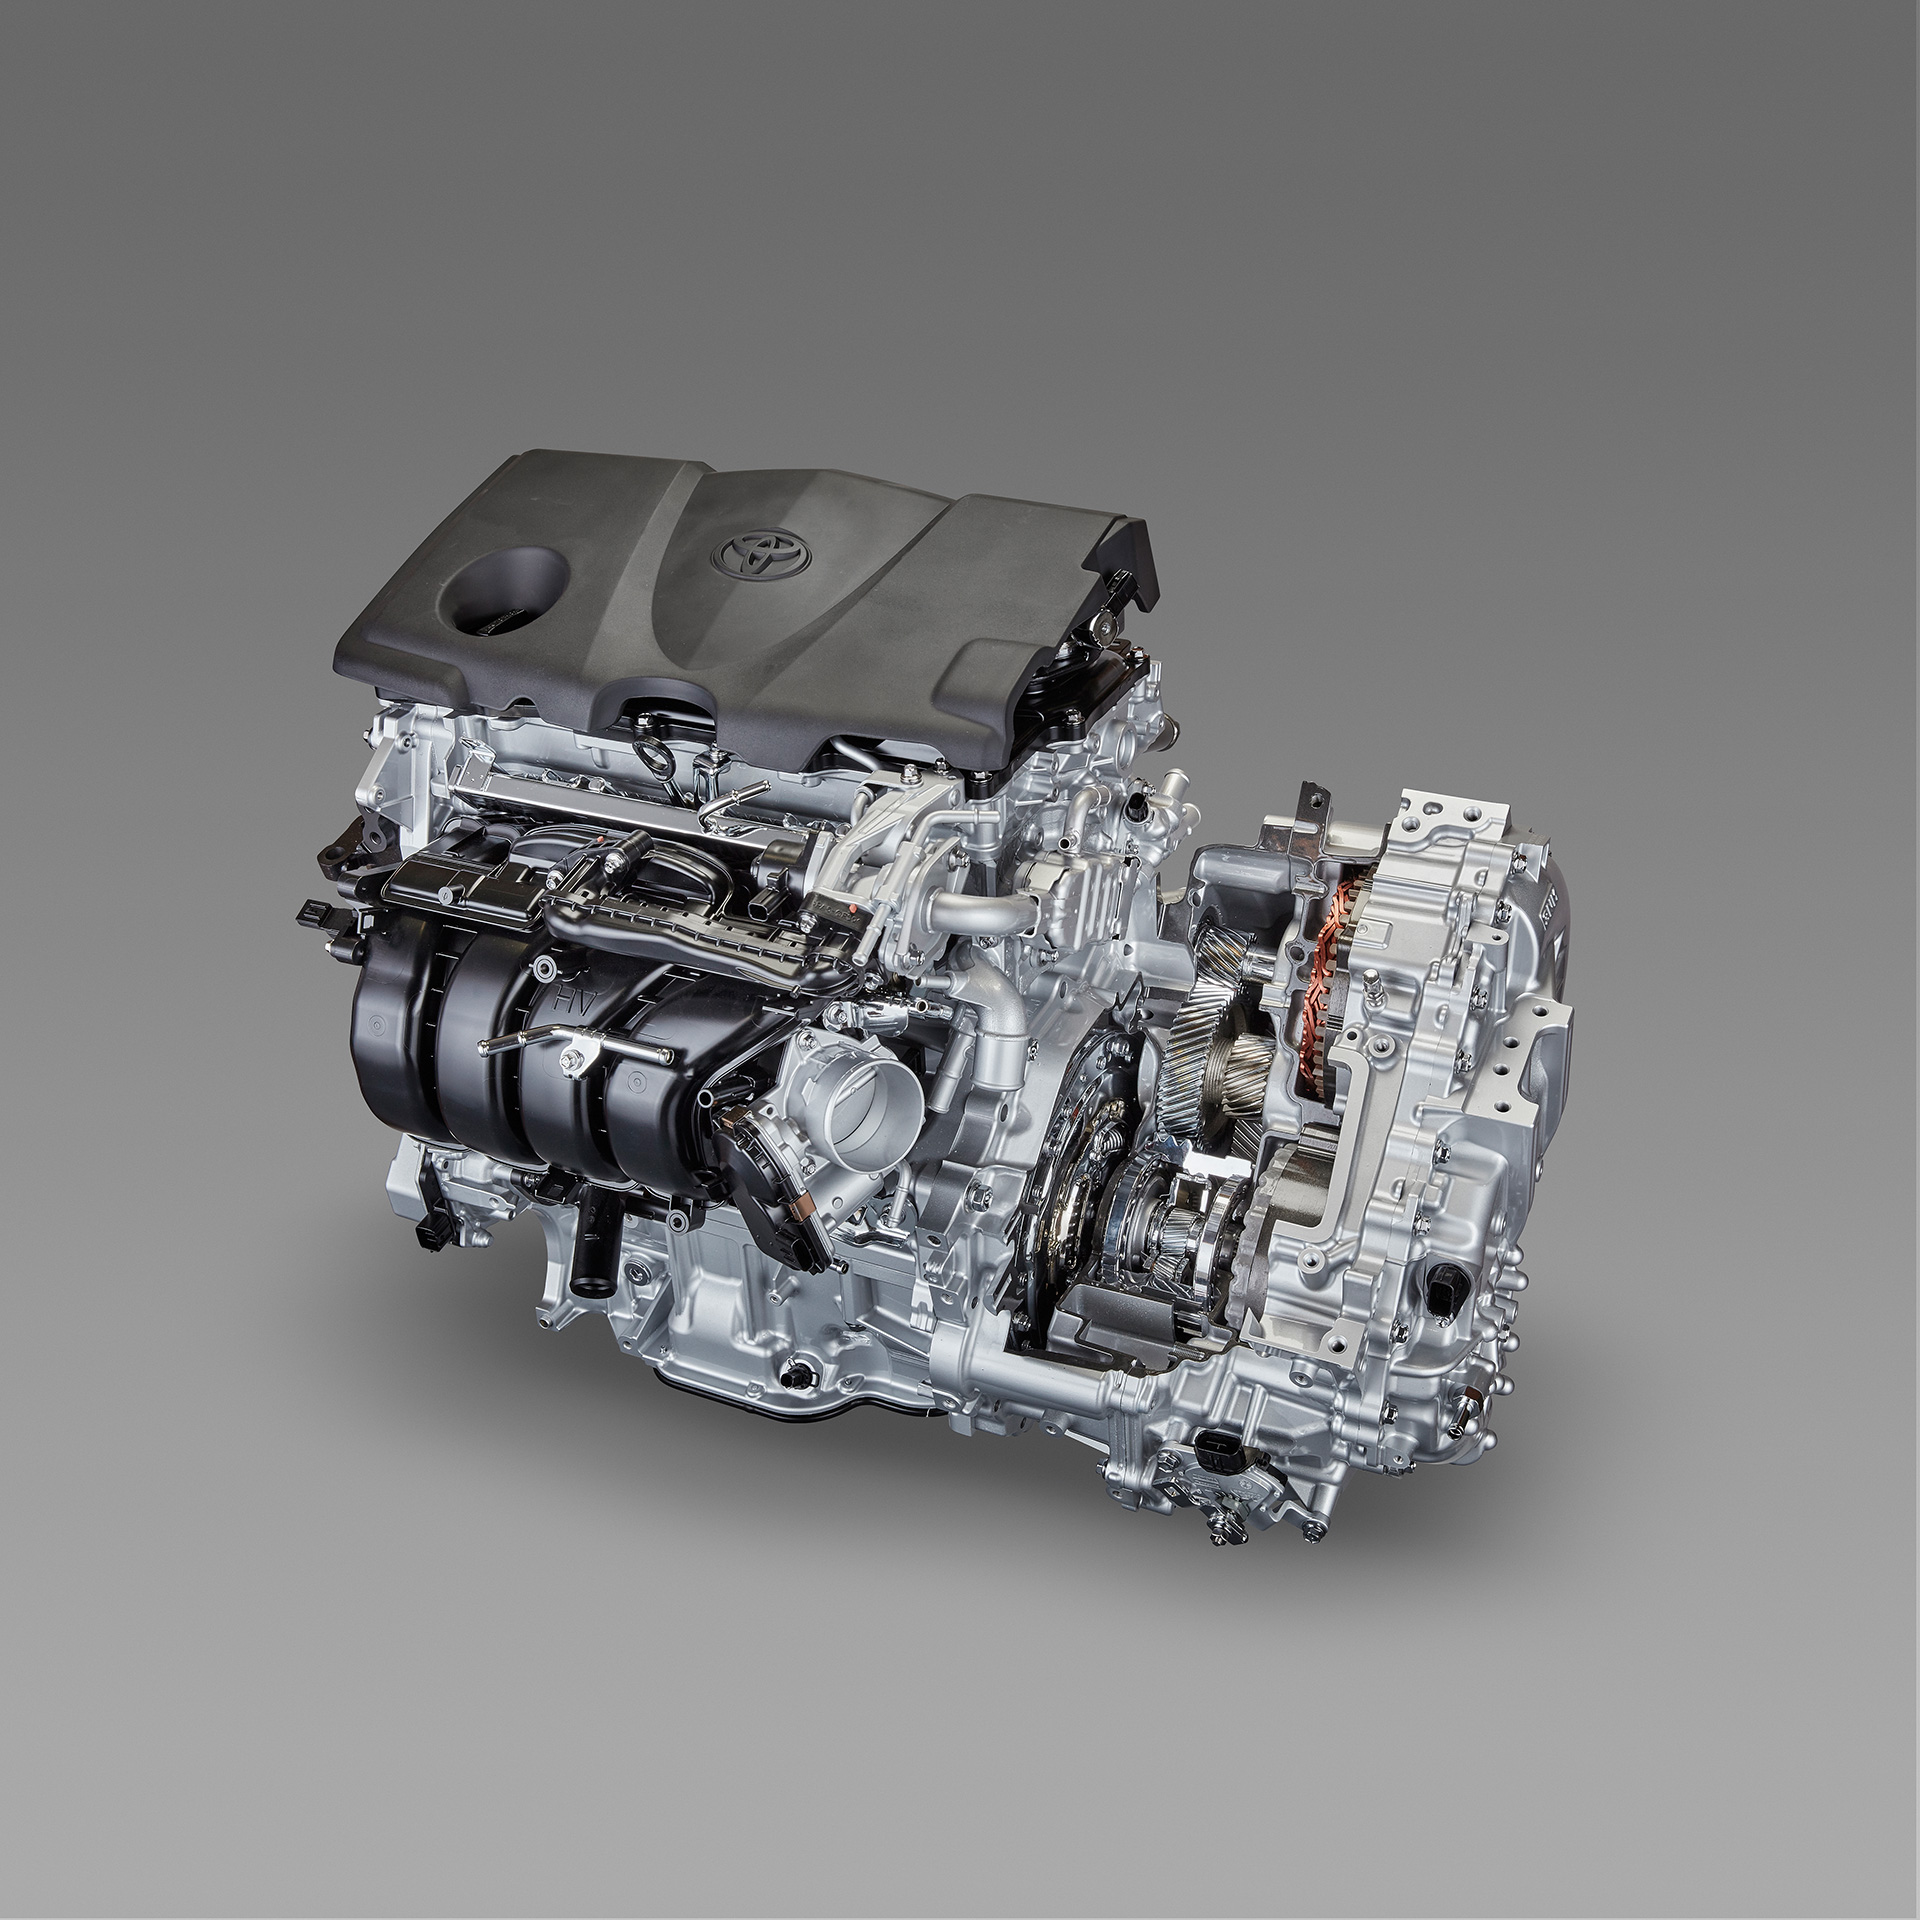 Inline 4 Cylinder 2.5L Direct Injection Gasoline Engine / New Transaxle